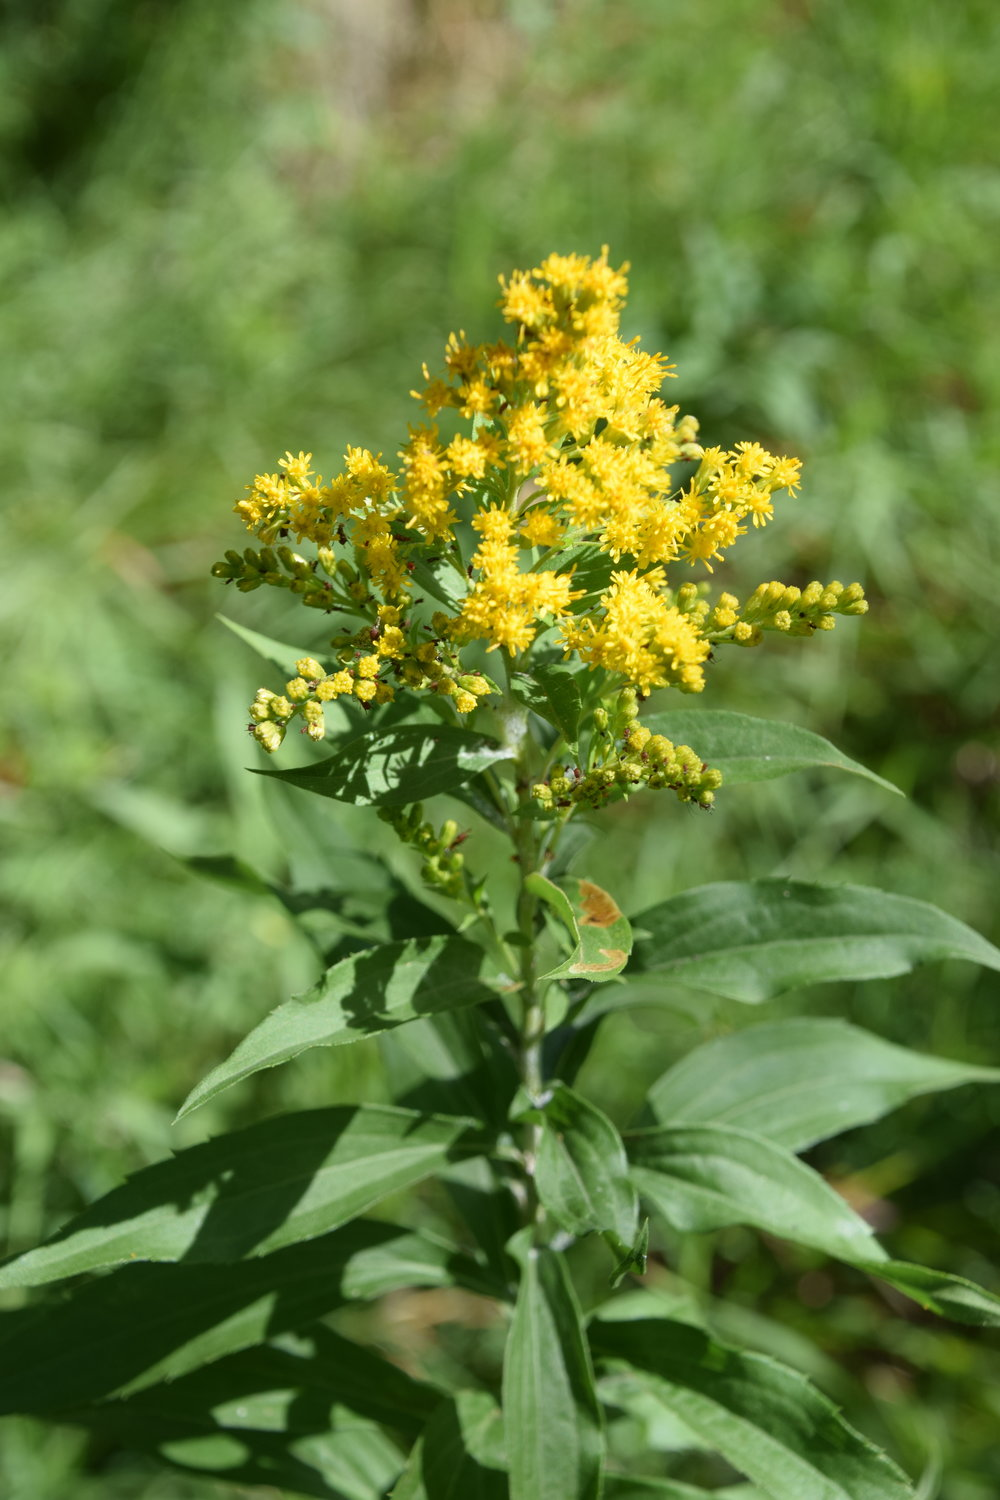 Canada goldenrod in bloom